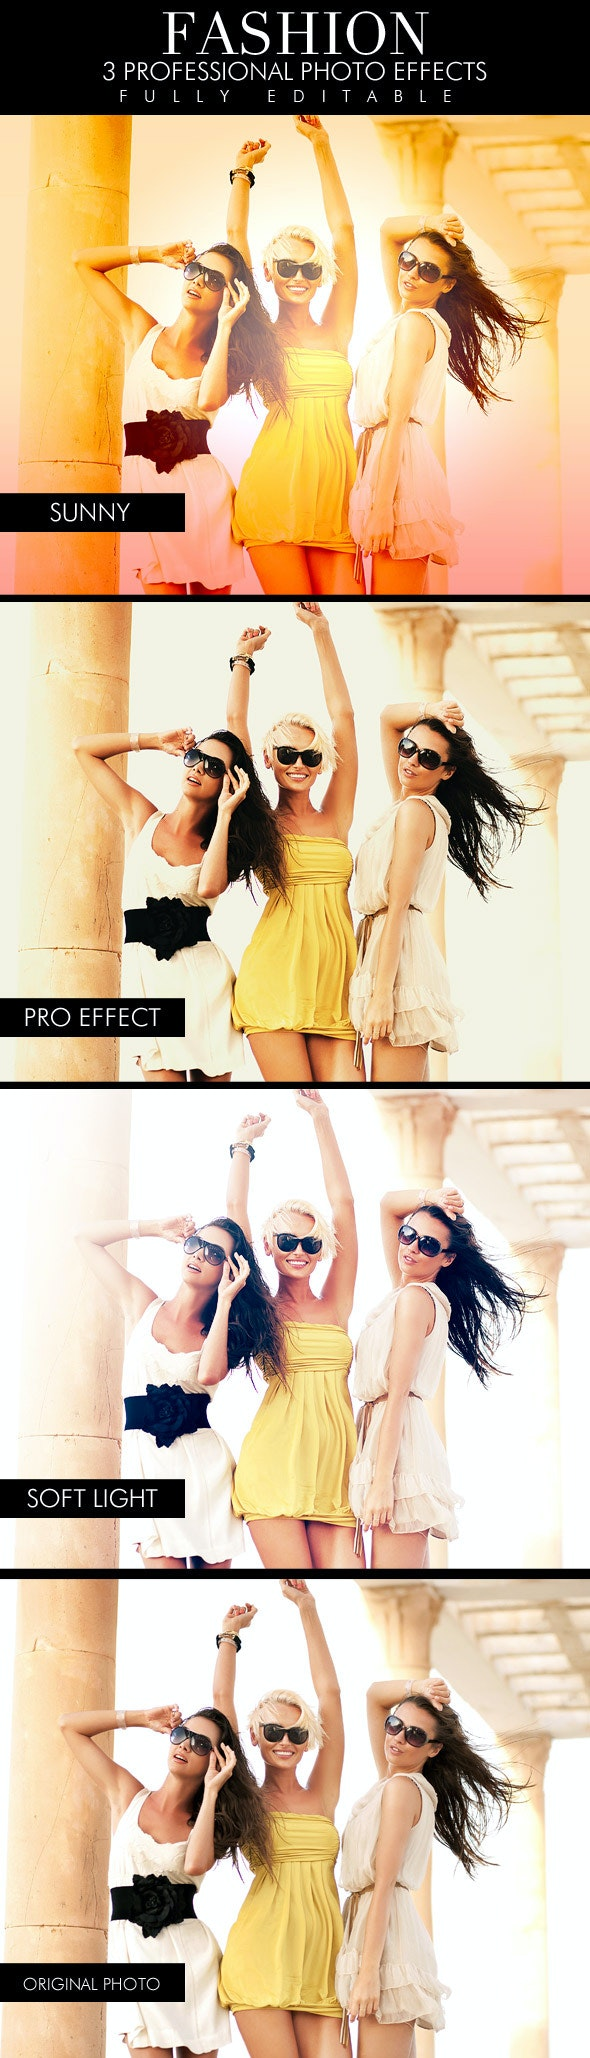 Fashion - 3 photo effects - Photo Effects Actions